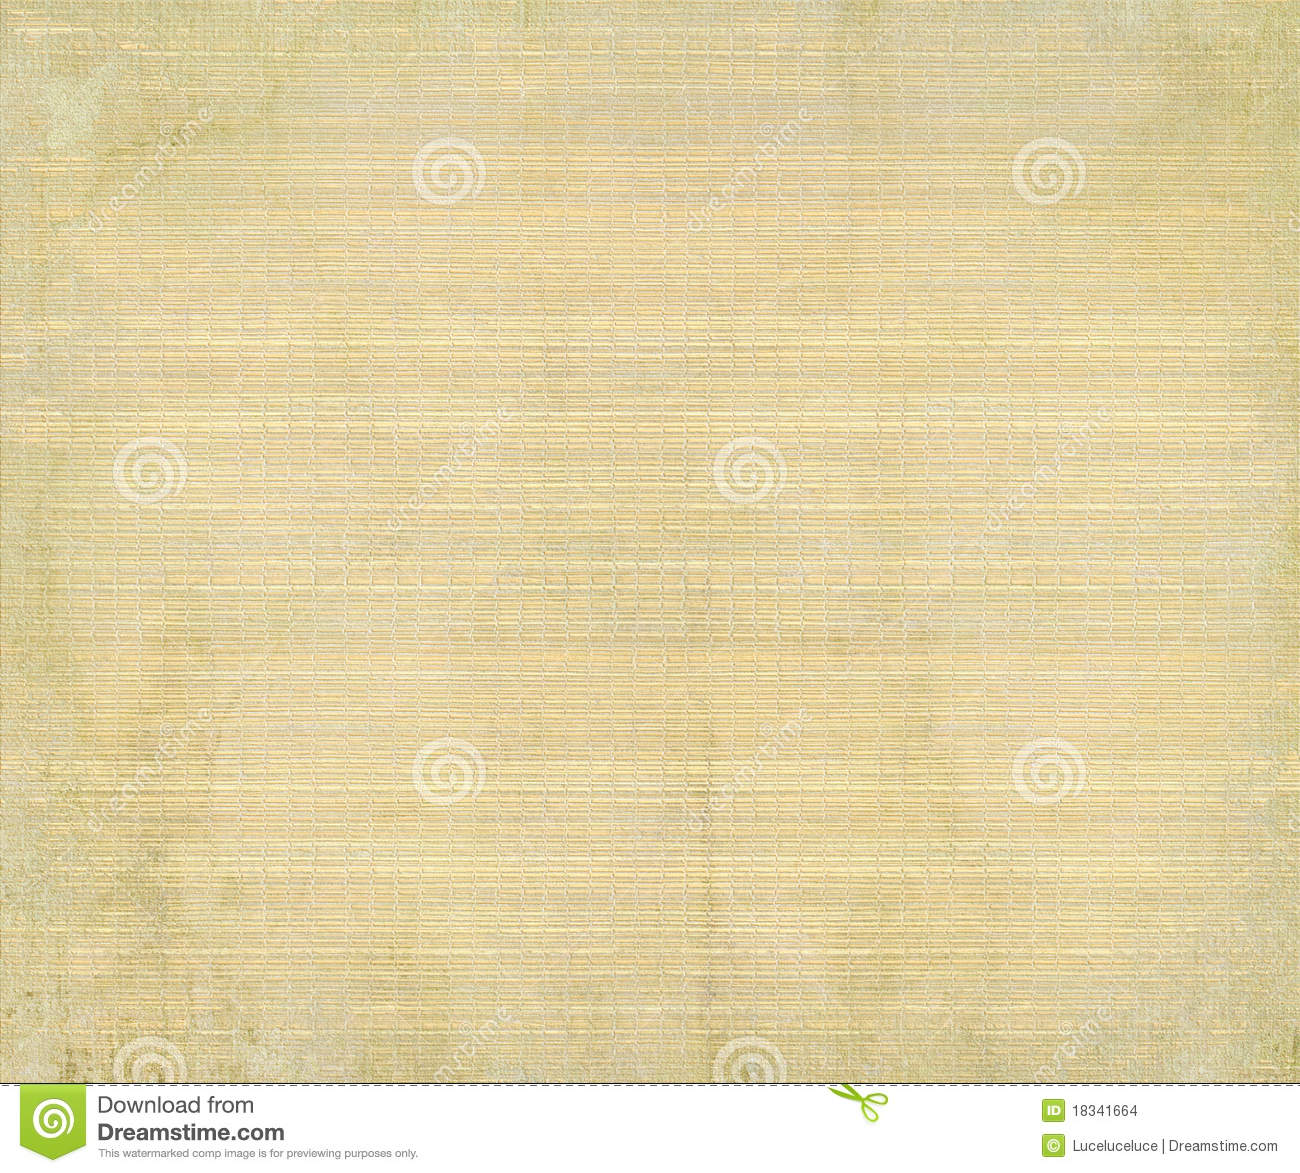 Bamboo Paper Style Background Stock Images - Image: 18341664